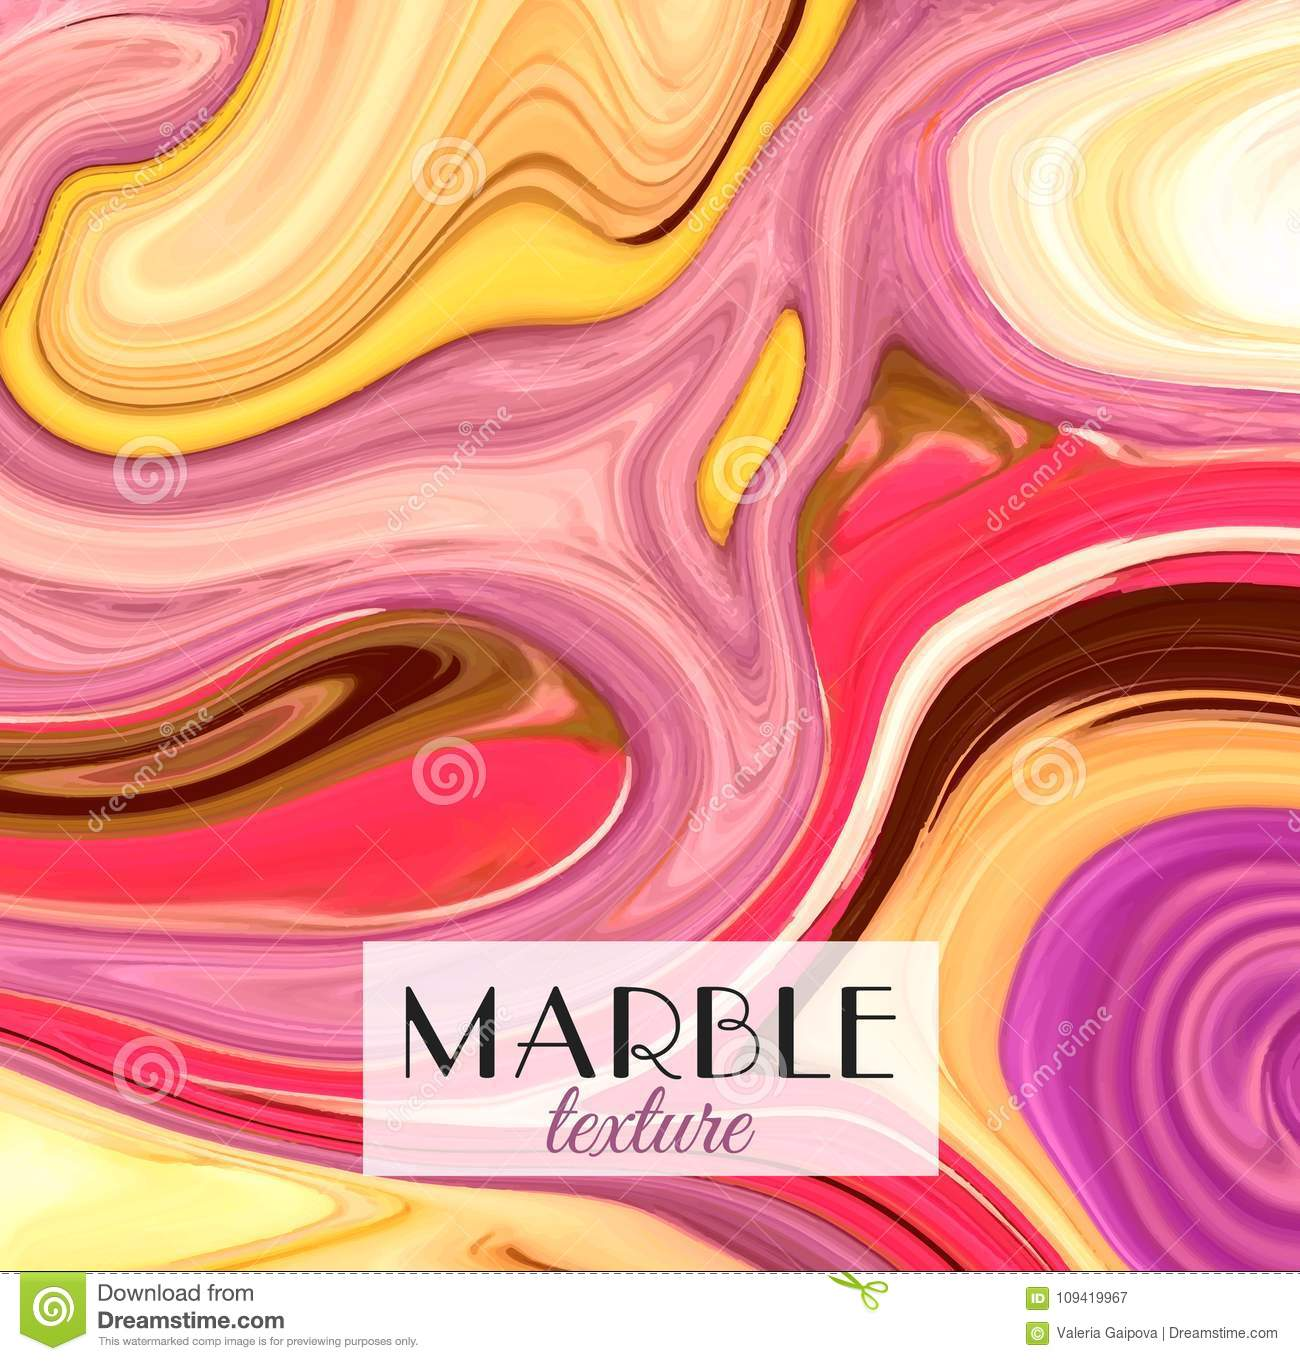 Marbling. Marble texture. Artistic abstract colorful background. Splash of paint. Colorful fluid. Bright colors